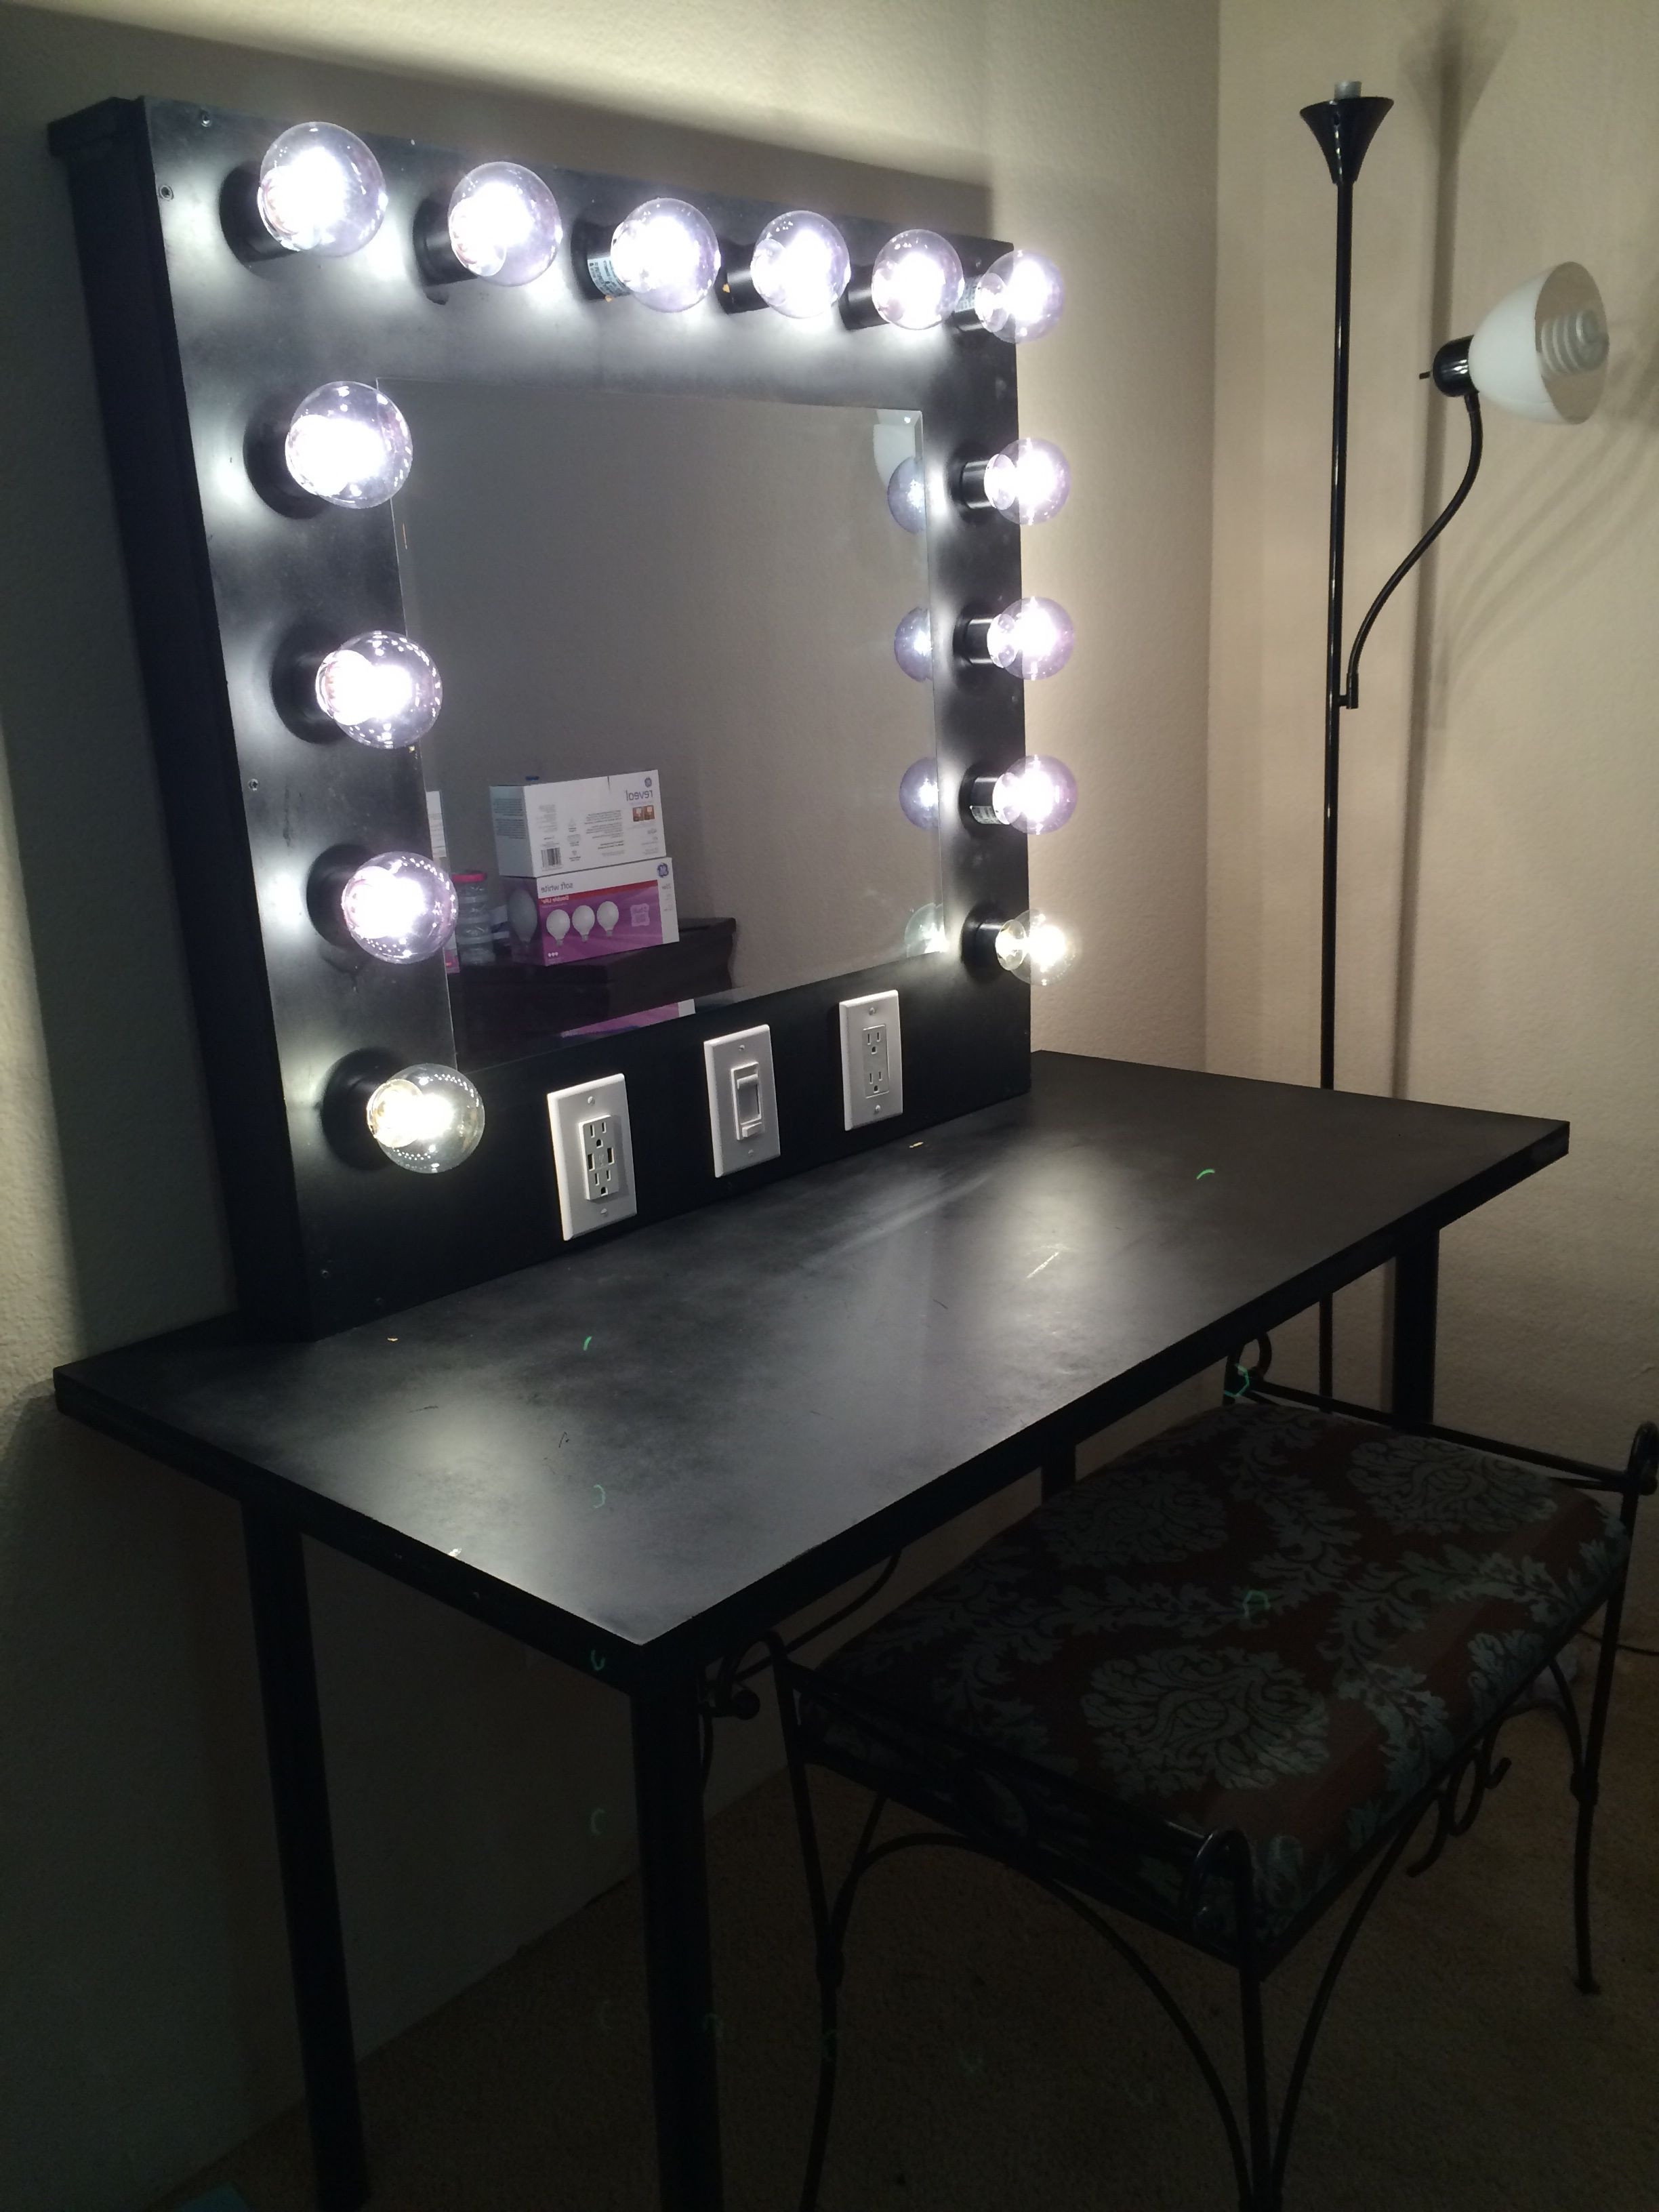 Best ideas about DIY Makeup Vanity Lighting . Save or Pin 17 DIY Vanity Mirror Ideas to Make Your Room More Now.